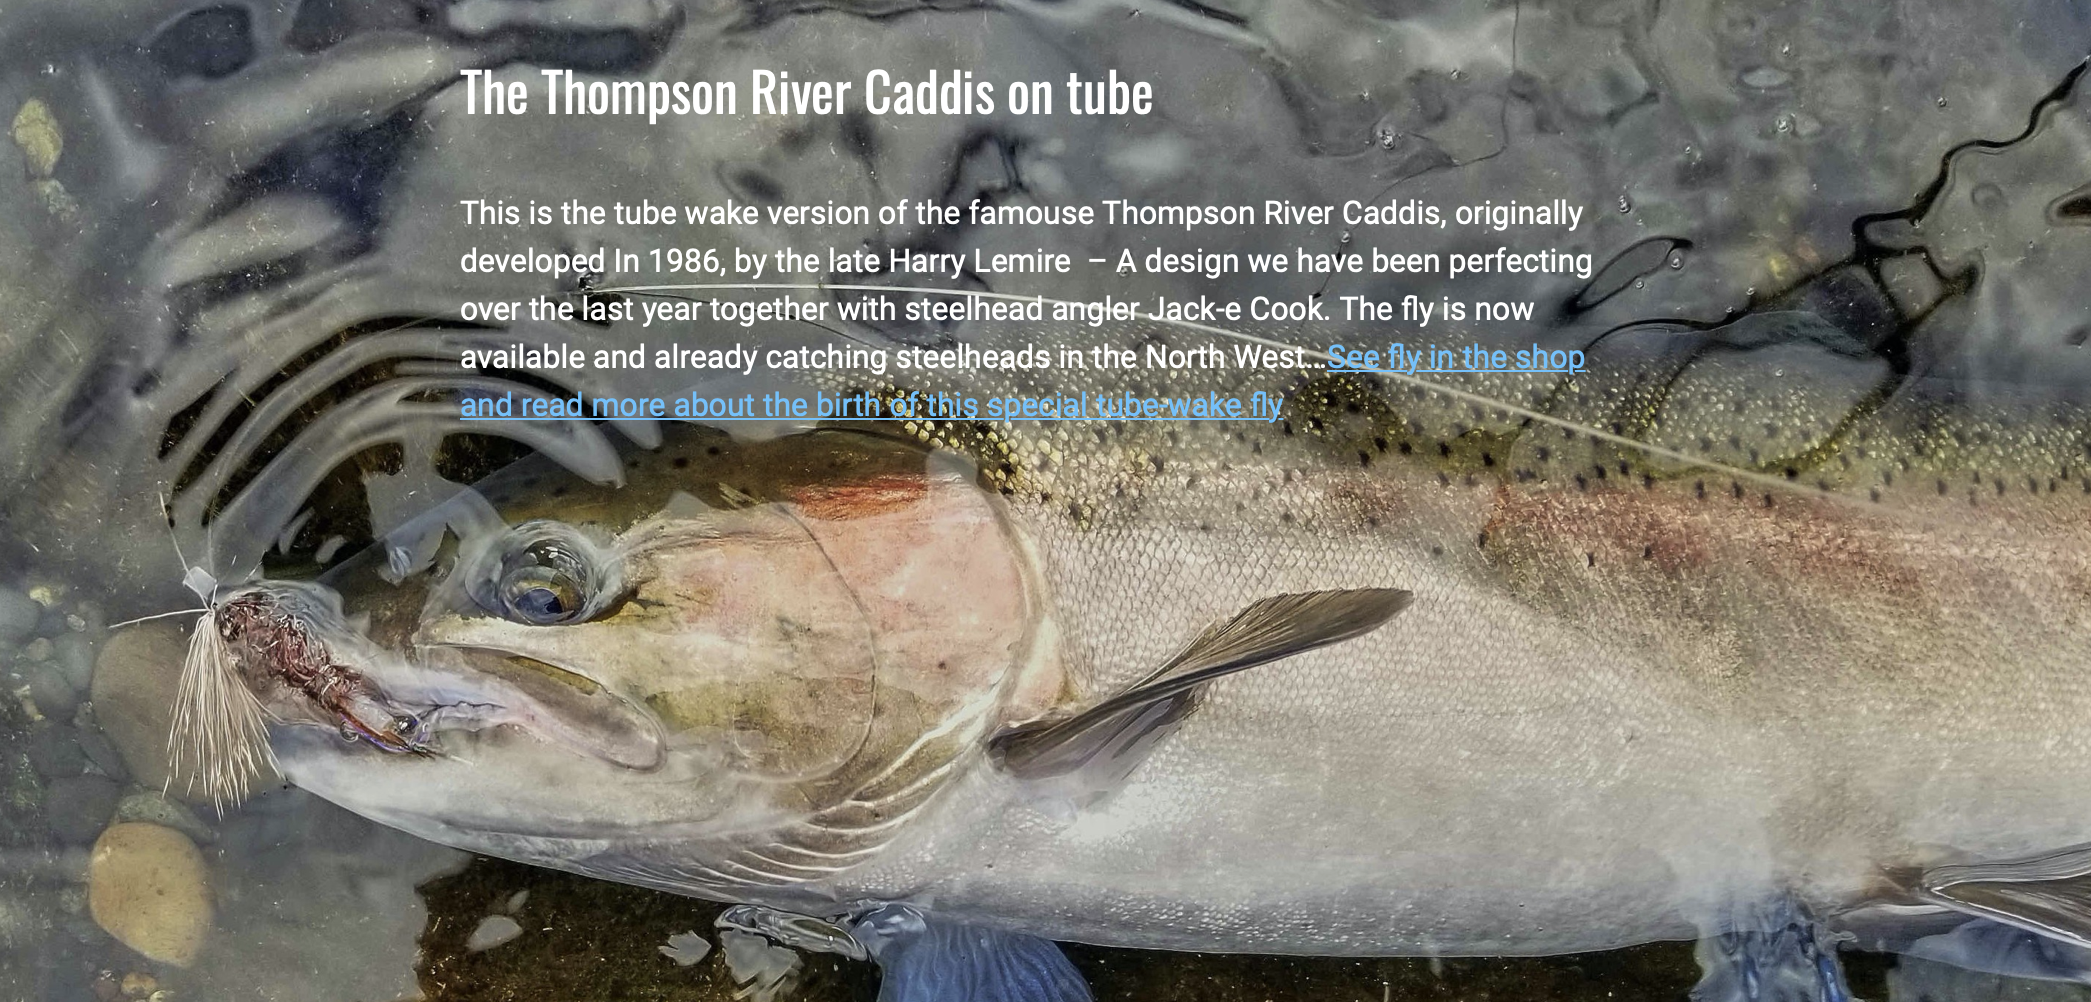 The Thompson River Caddis on tube